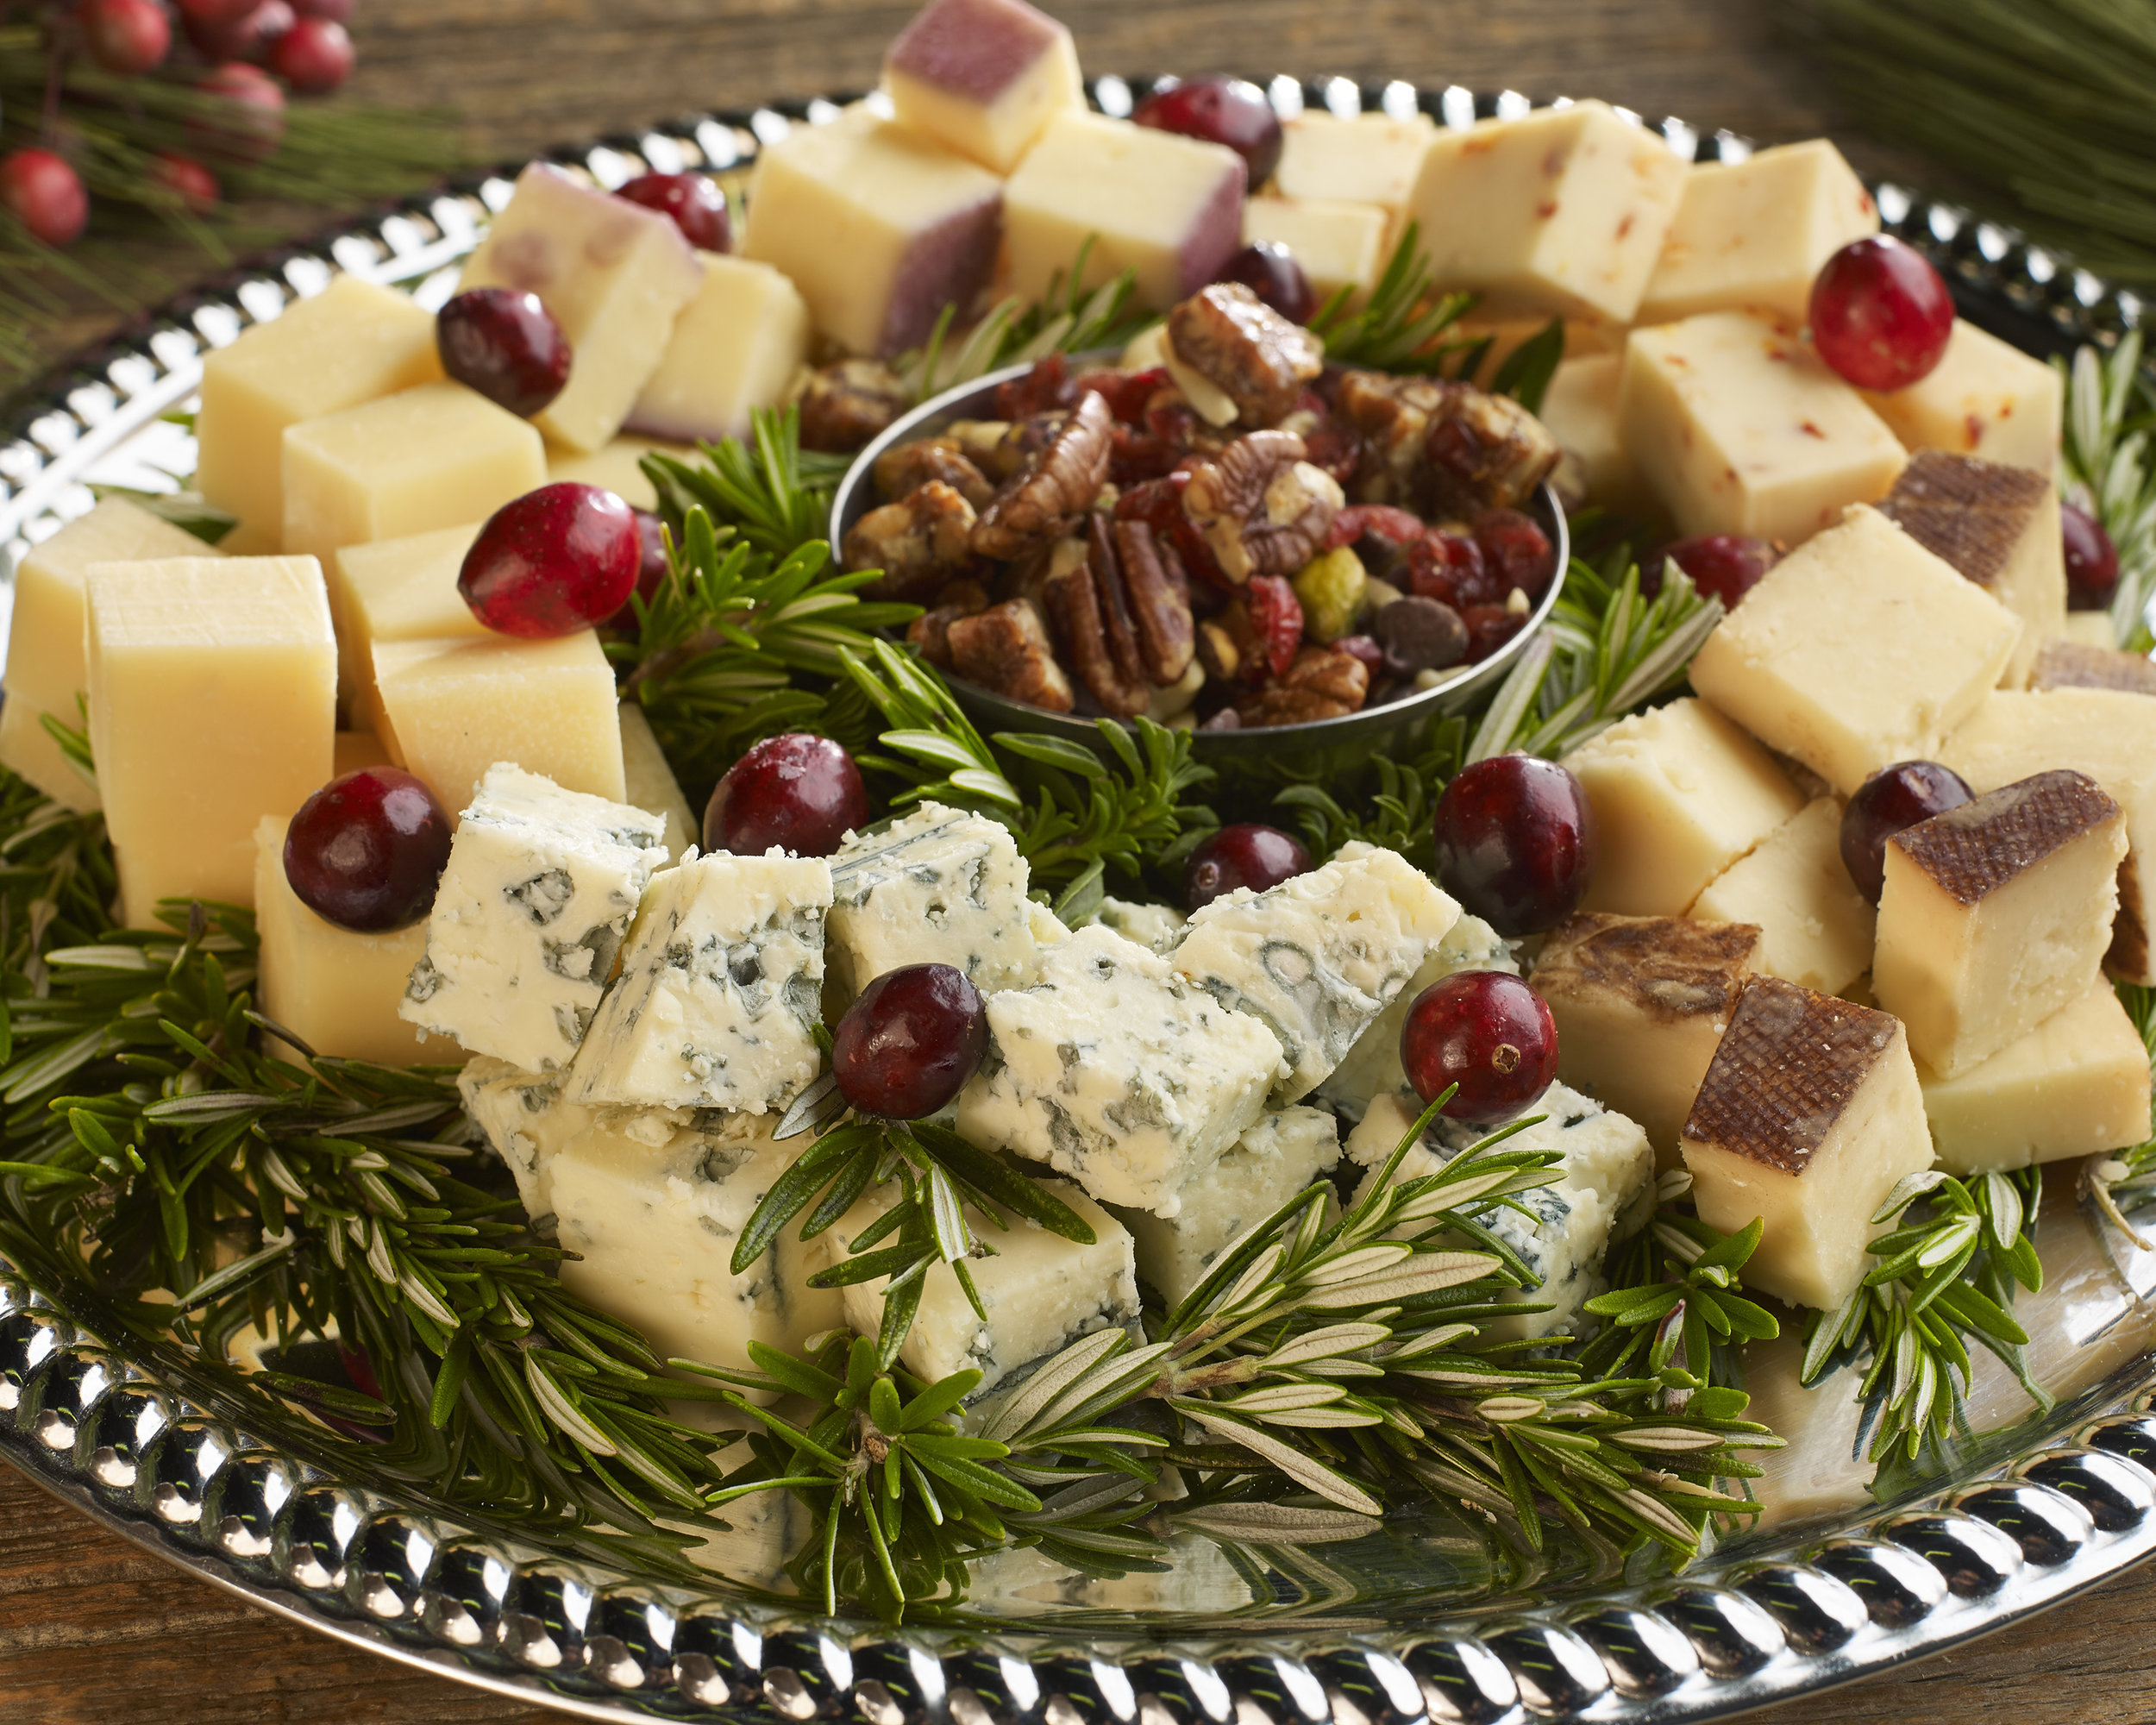 cheese-platter-presentation-ideas-3.jpg